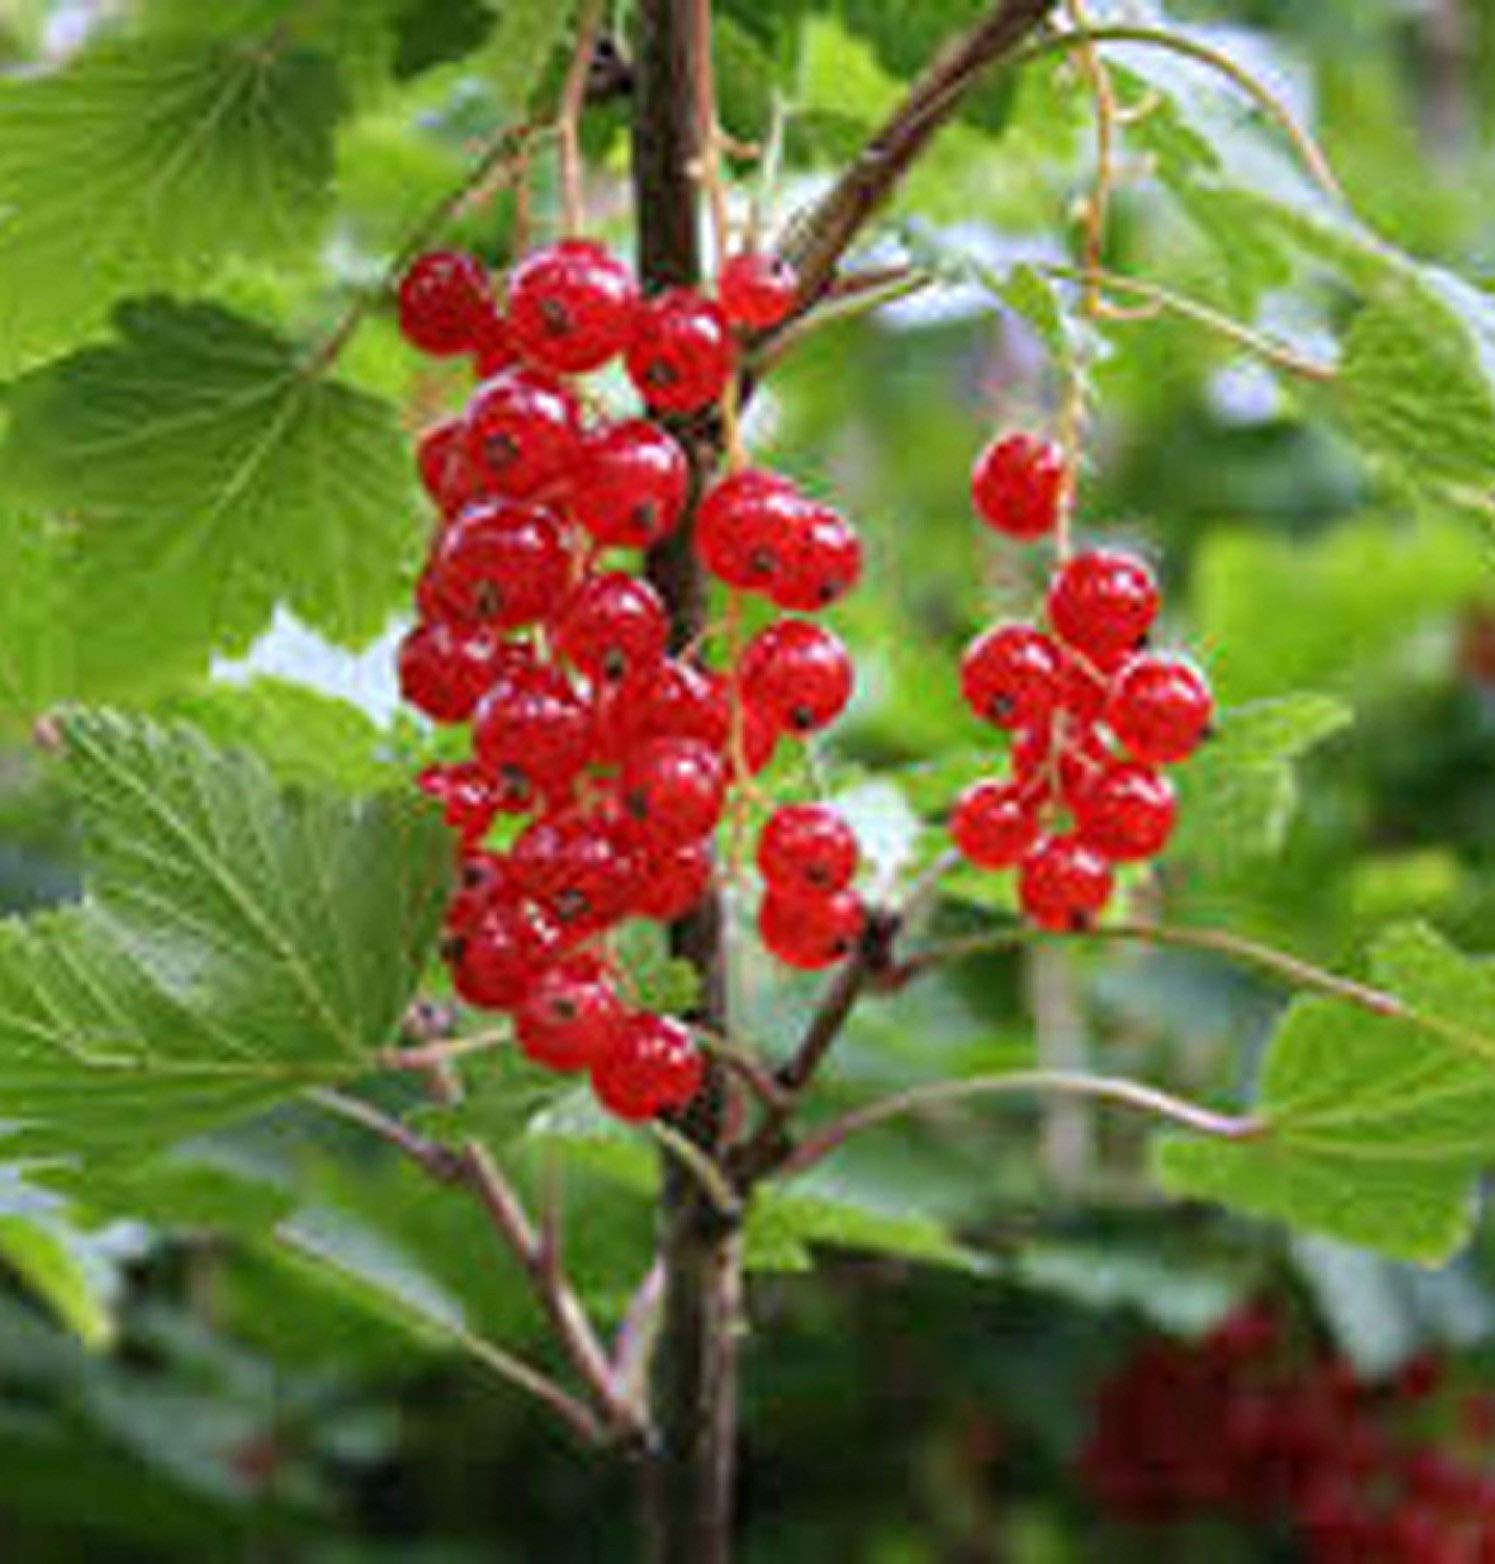 Ma_Plant Red Currant Fruit Shrub Small Tree with Sweet Edible Berry Live Plant